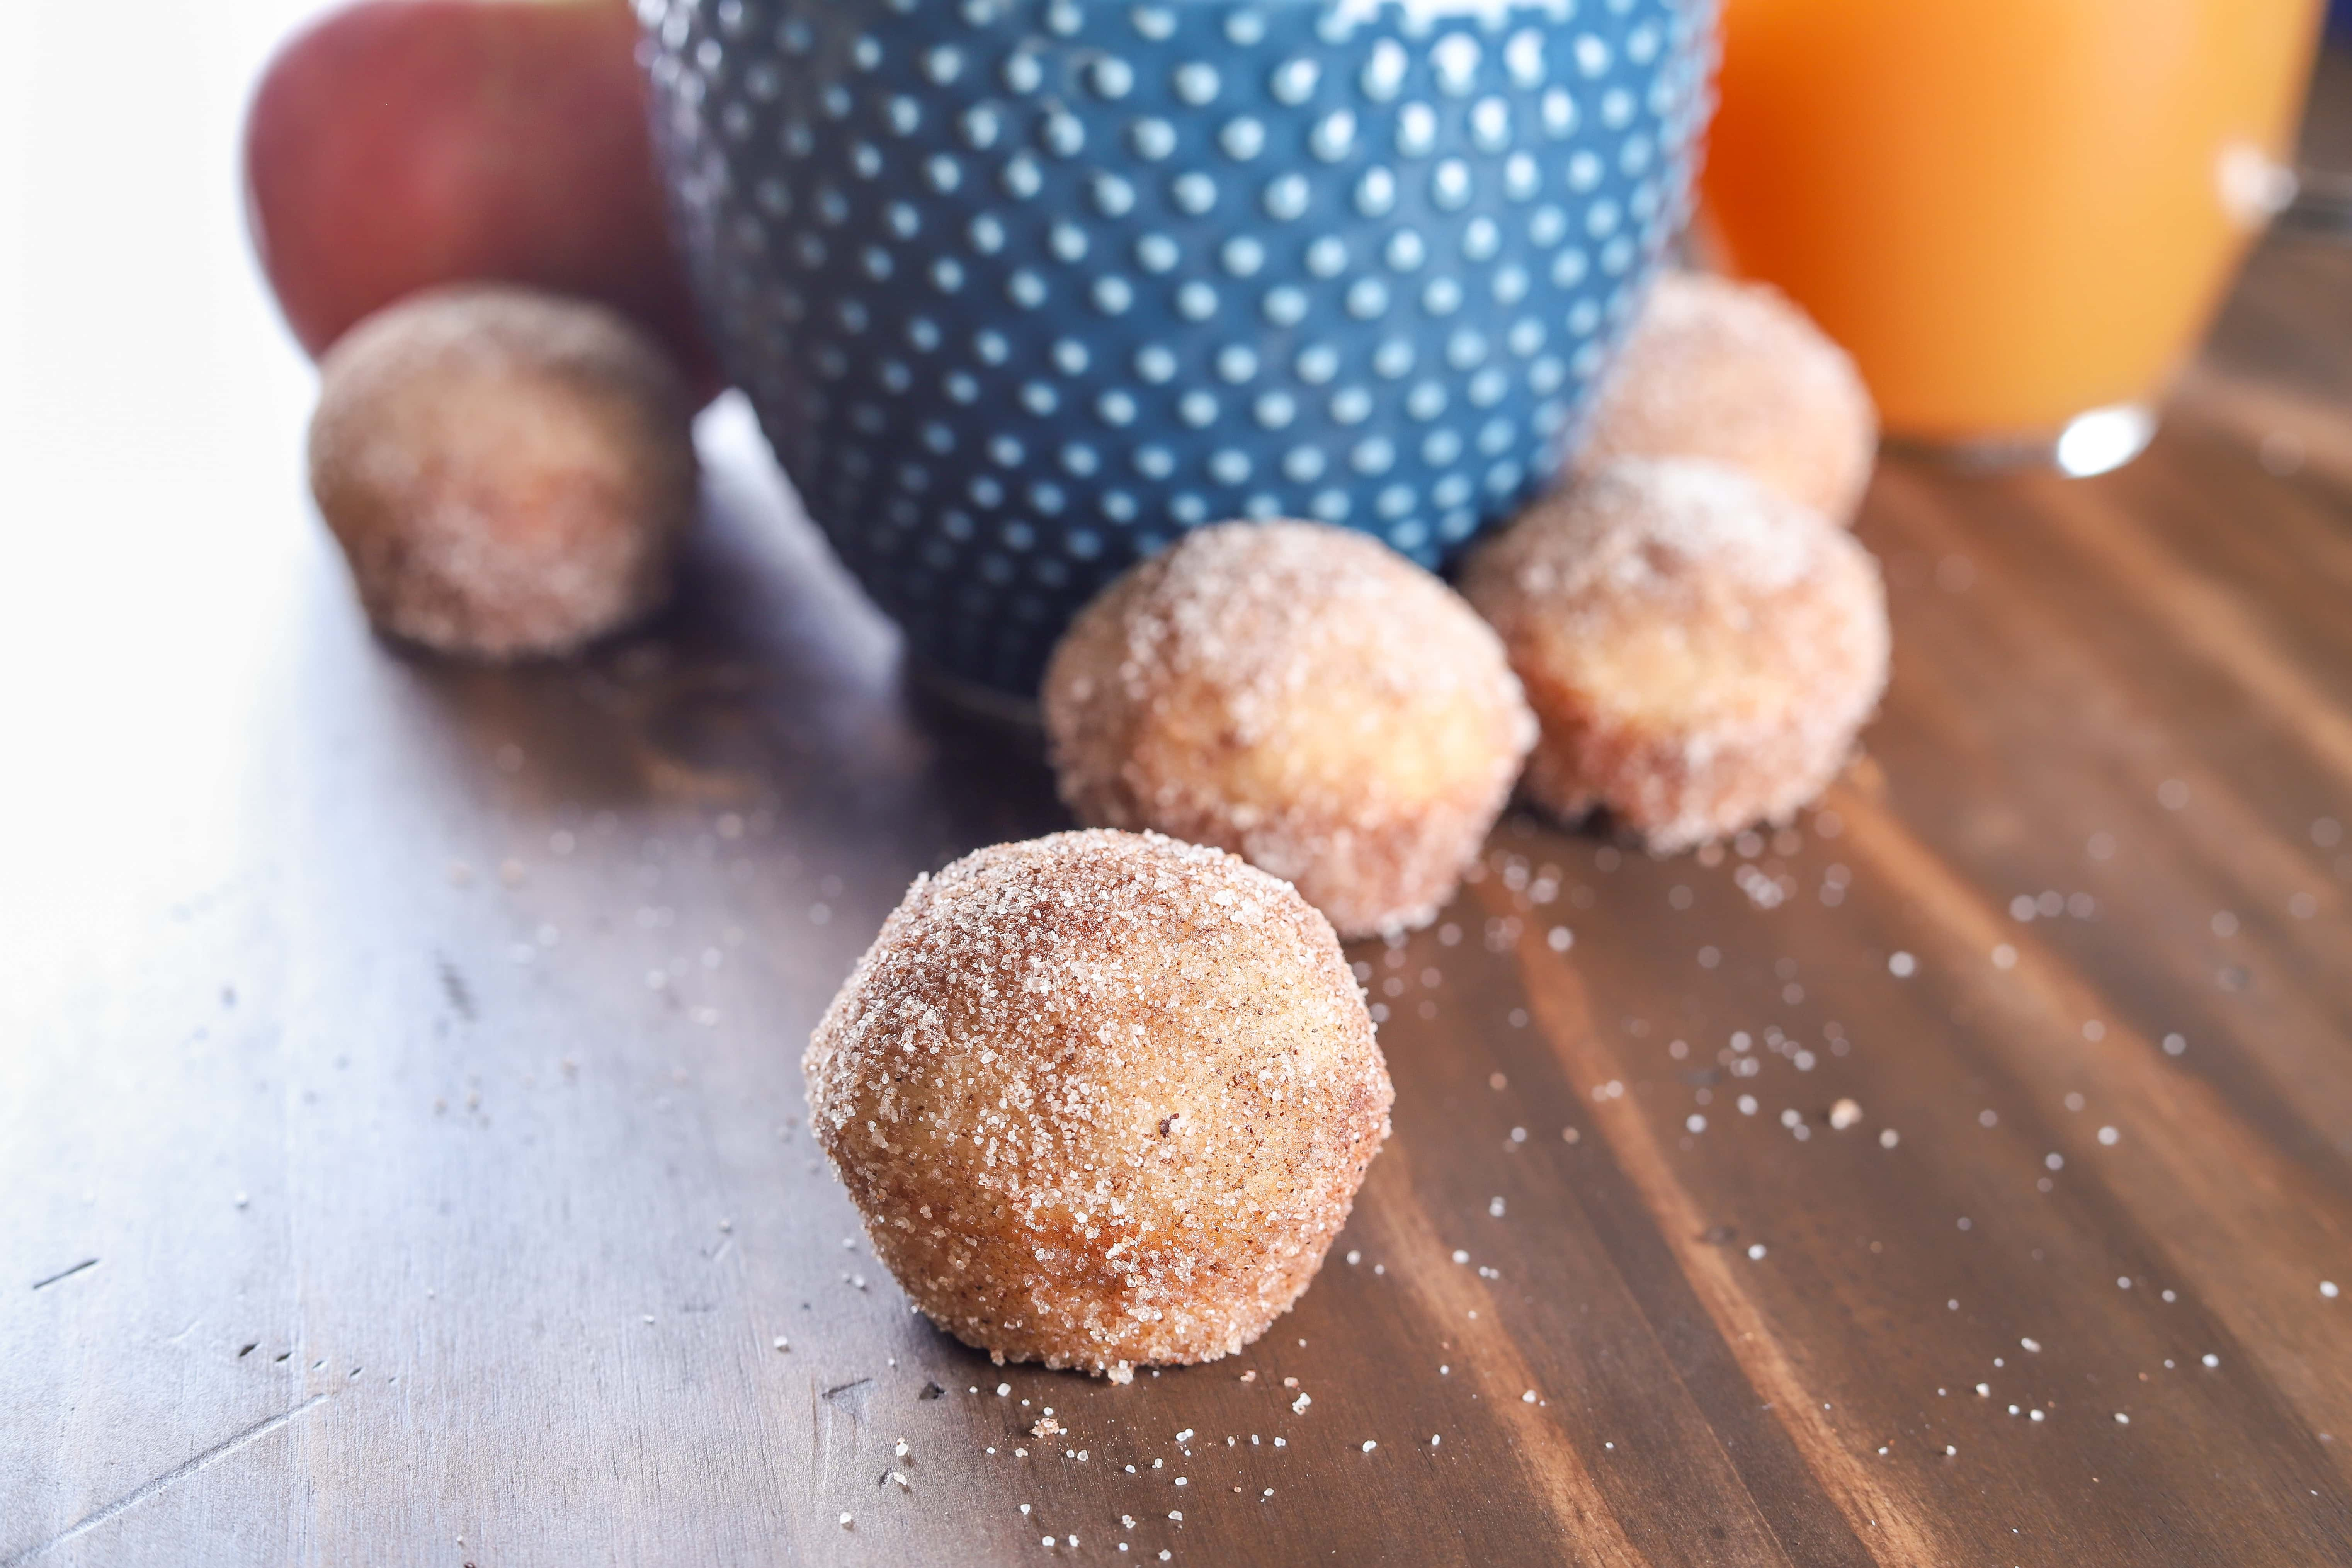 Spiced Apple Cider Mini Donut Muffins with a glass of apple cider. Recipe from A Kitchen Addiction